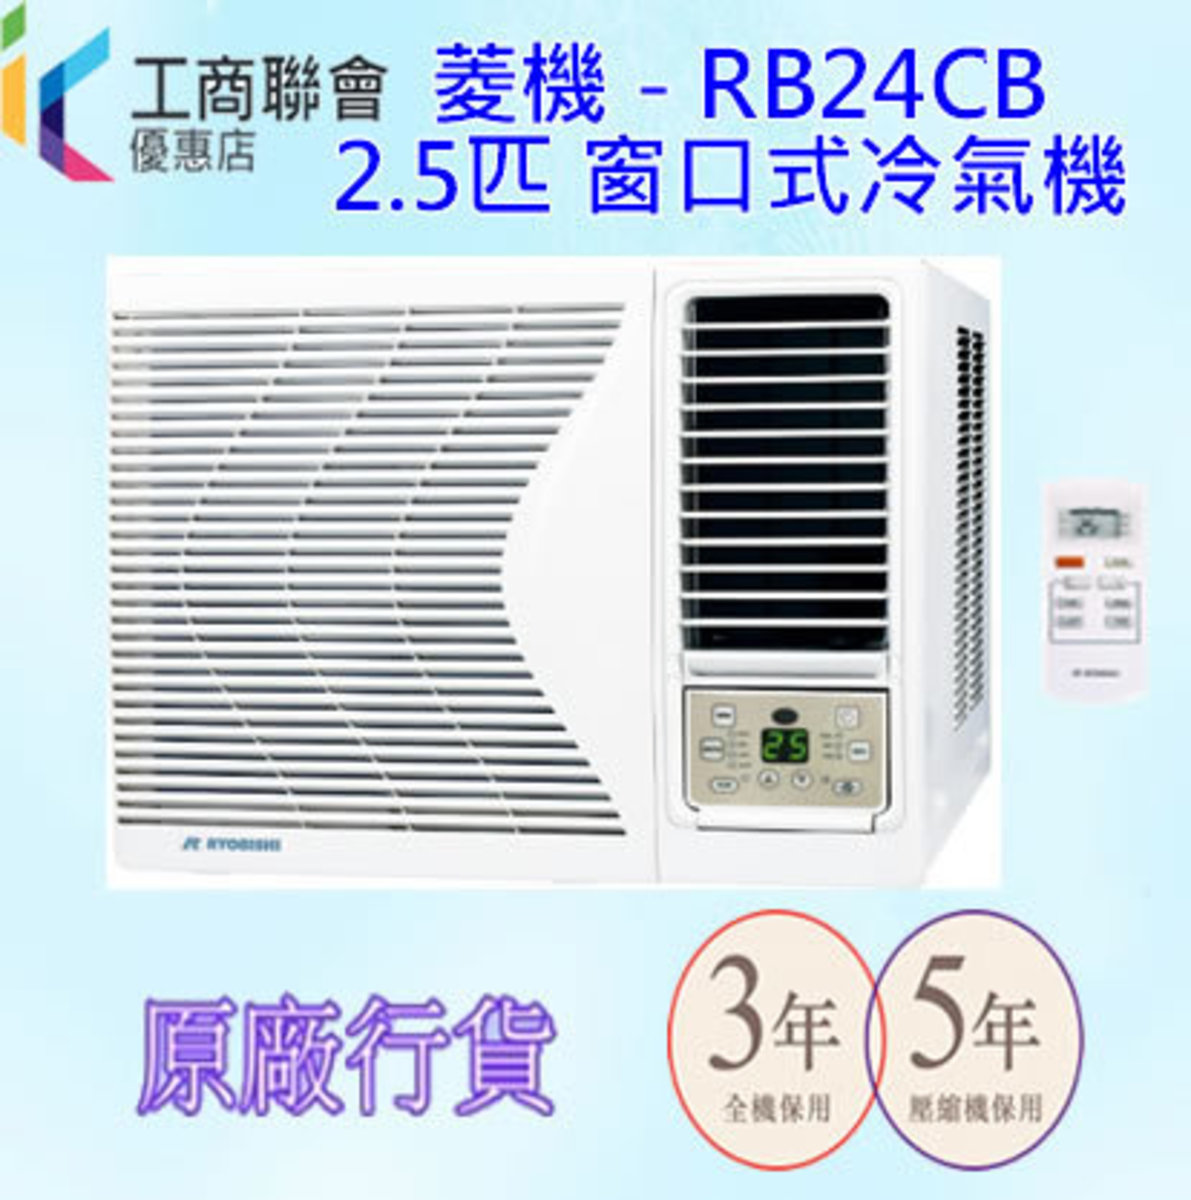 RB24CB 2.5 HP Window Air Conditioner Wireless Remote Control (Free removal service)